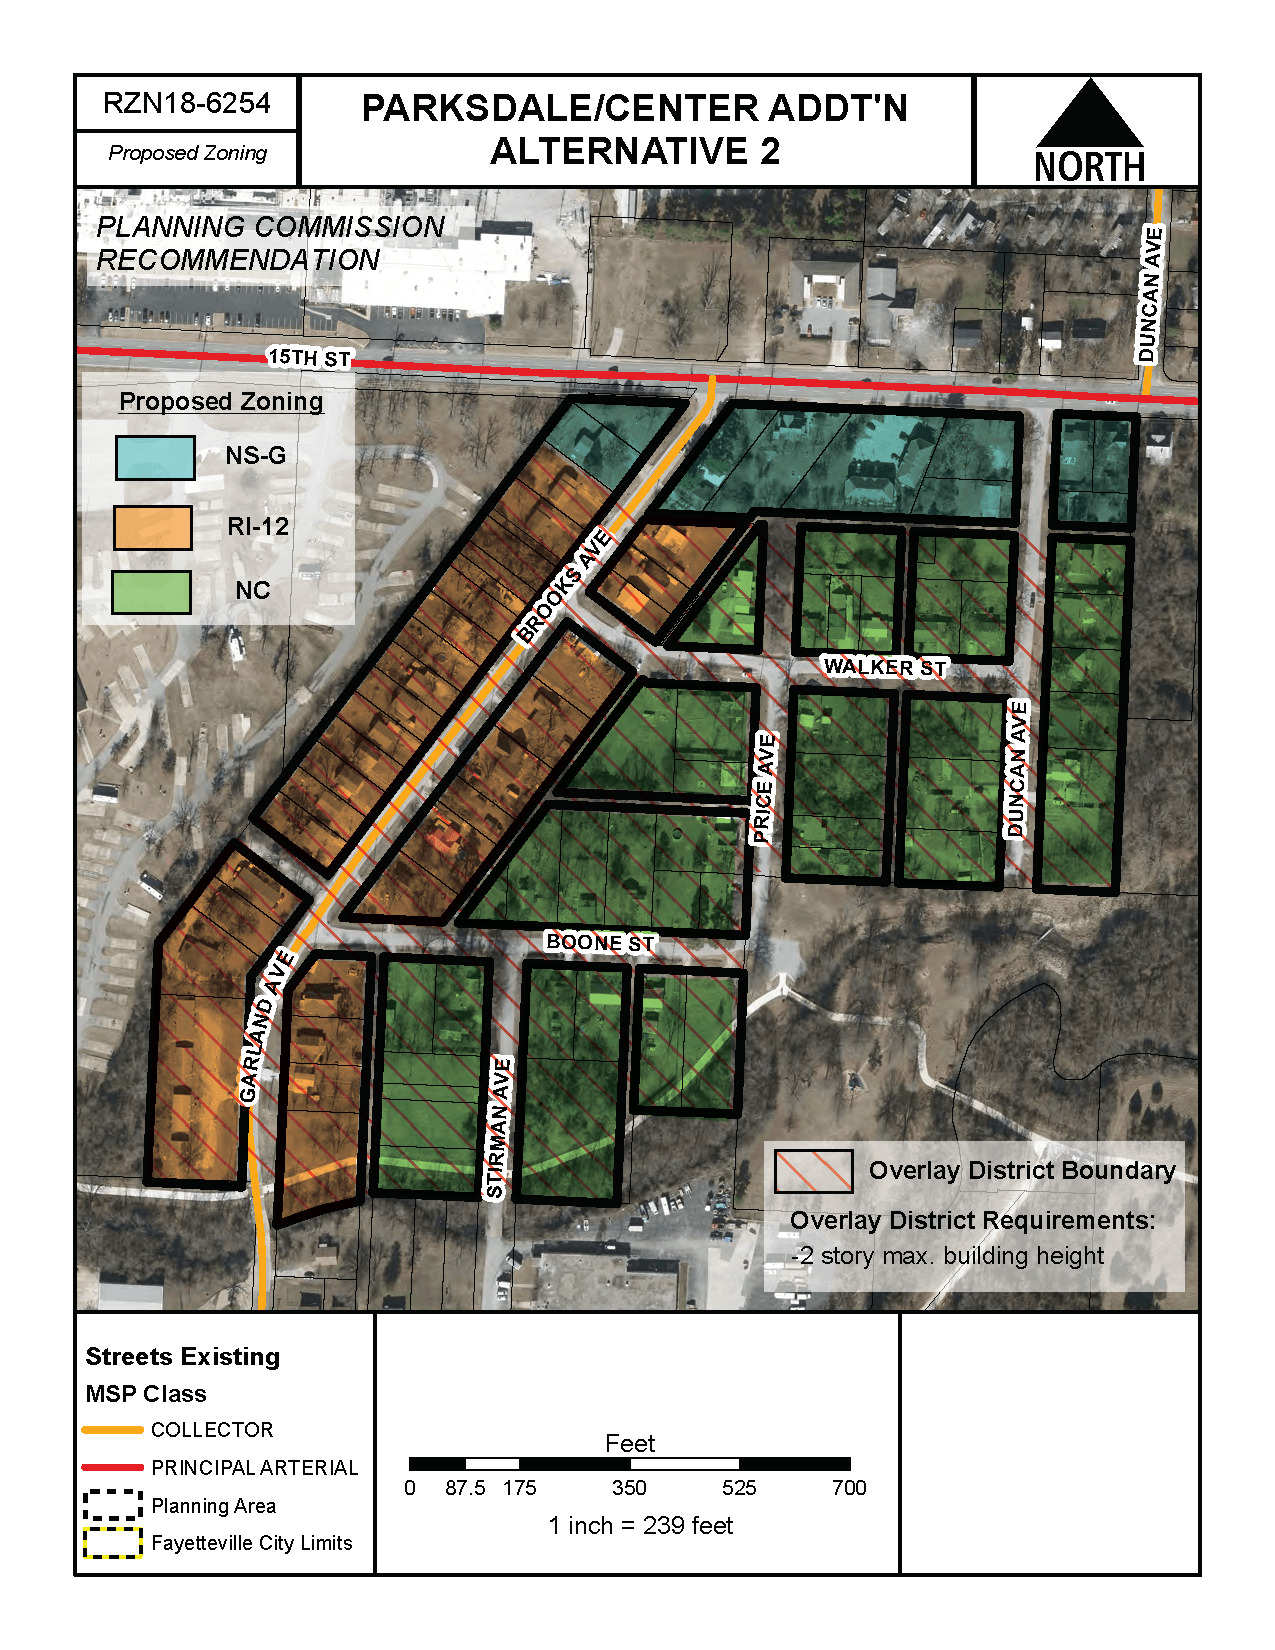 RZN18-6254 Proposed Alternative 2 (Planning Commission Rec)